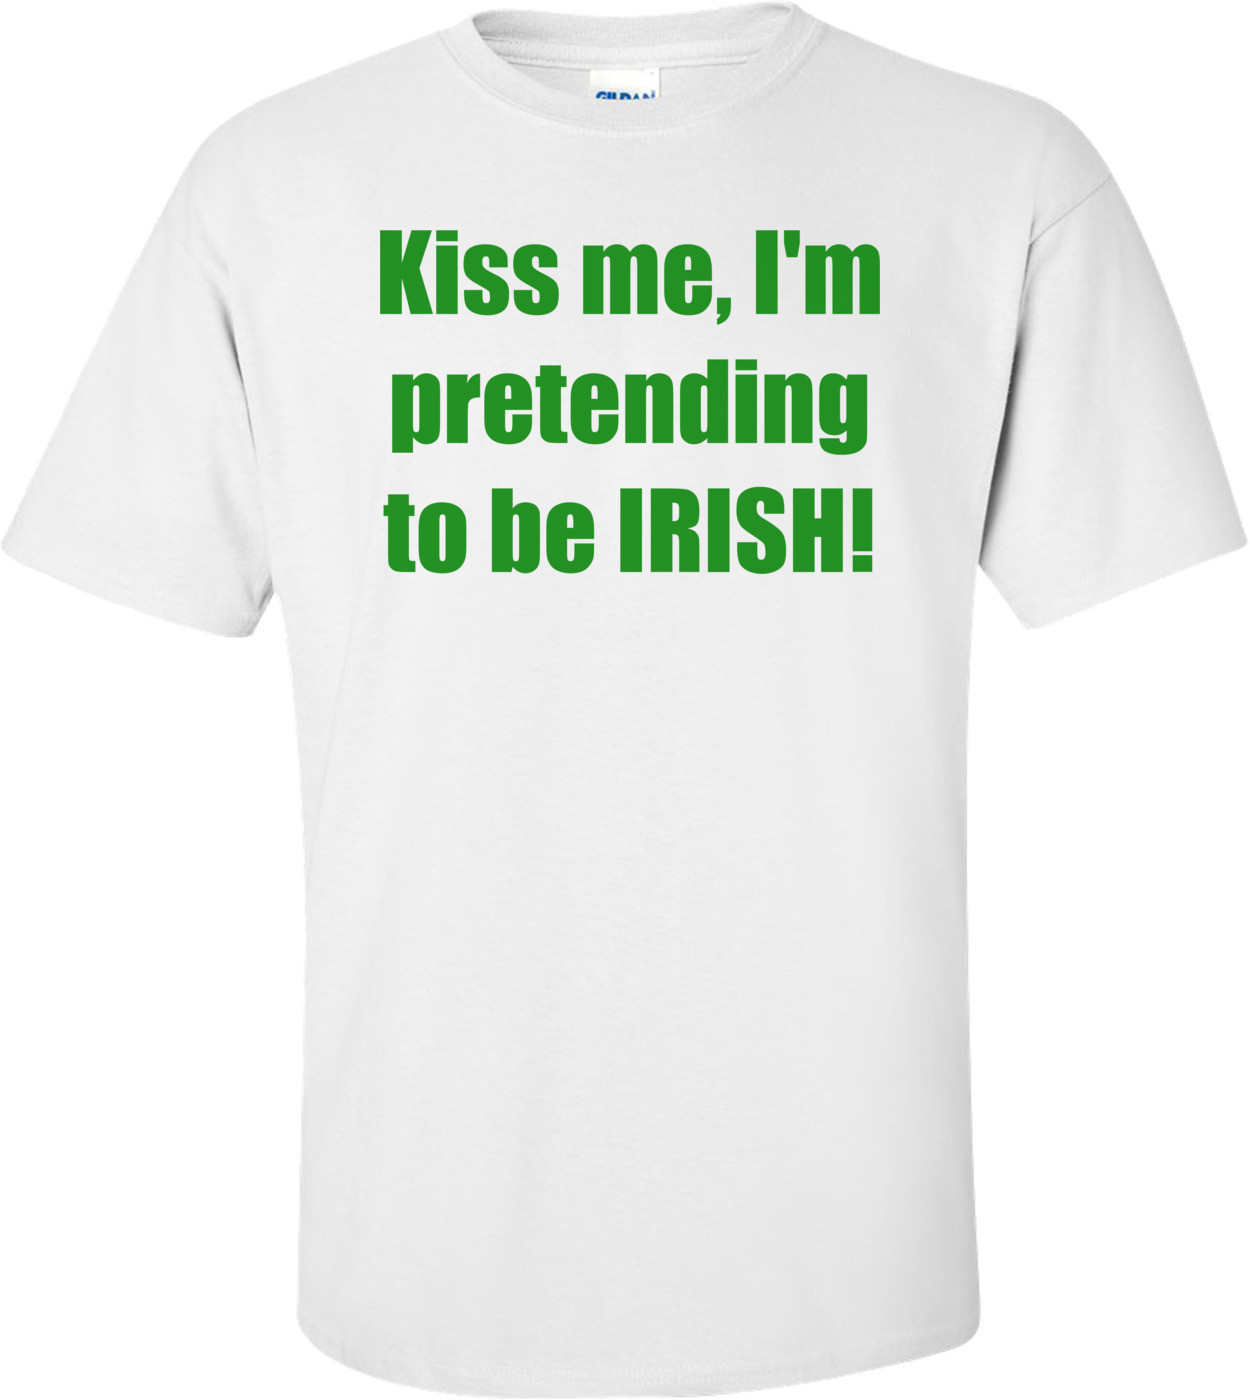 Kiss me, I'm pretending to be IRISH!